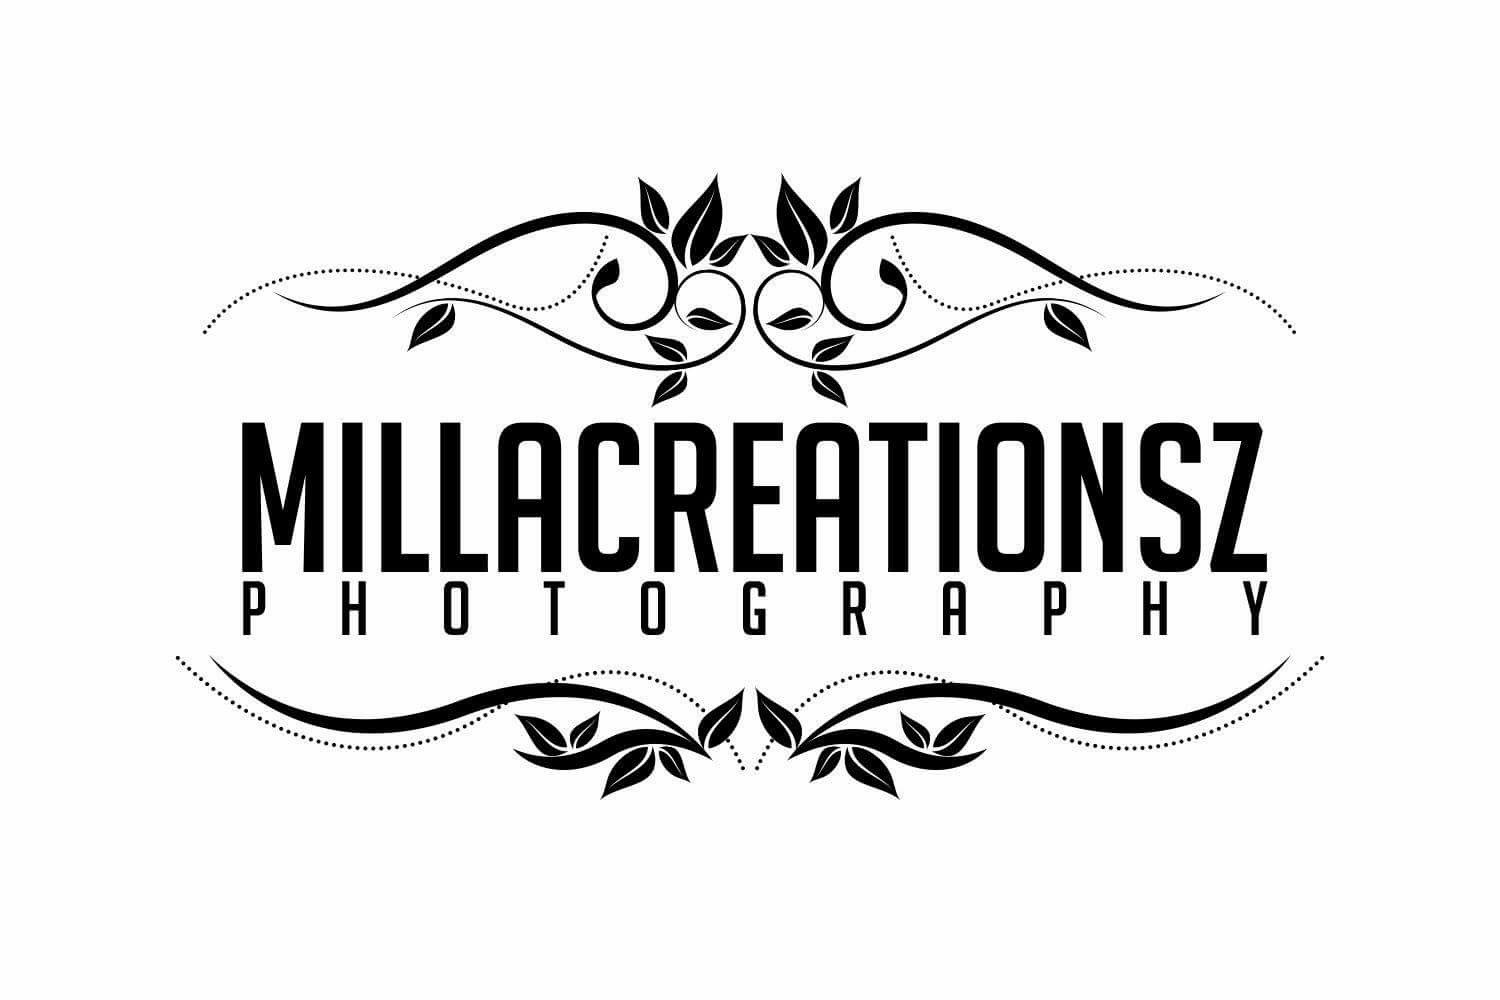 Mill Creationsz photography logo